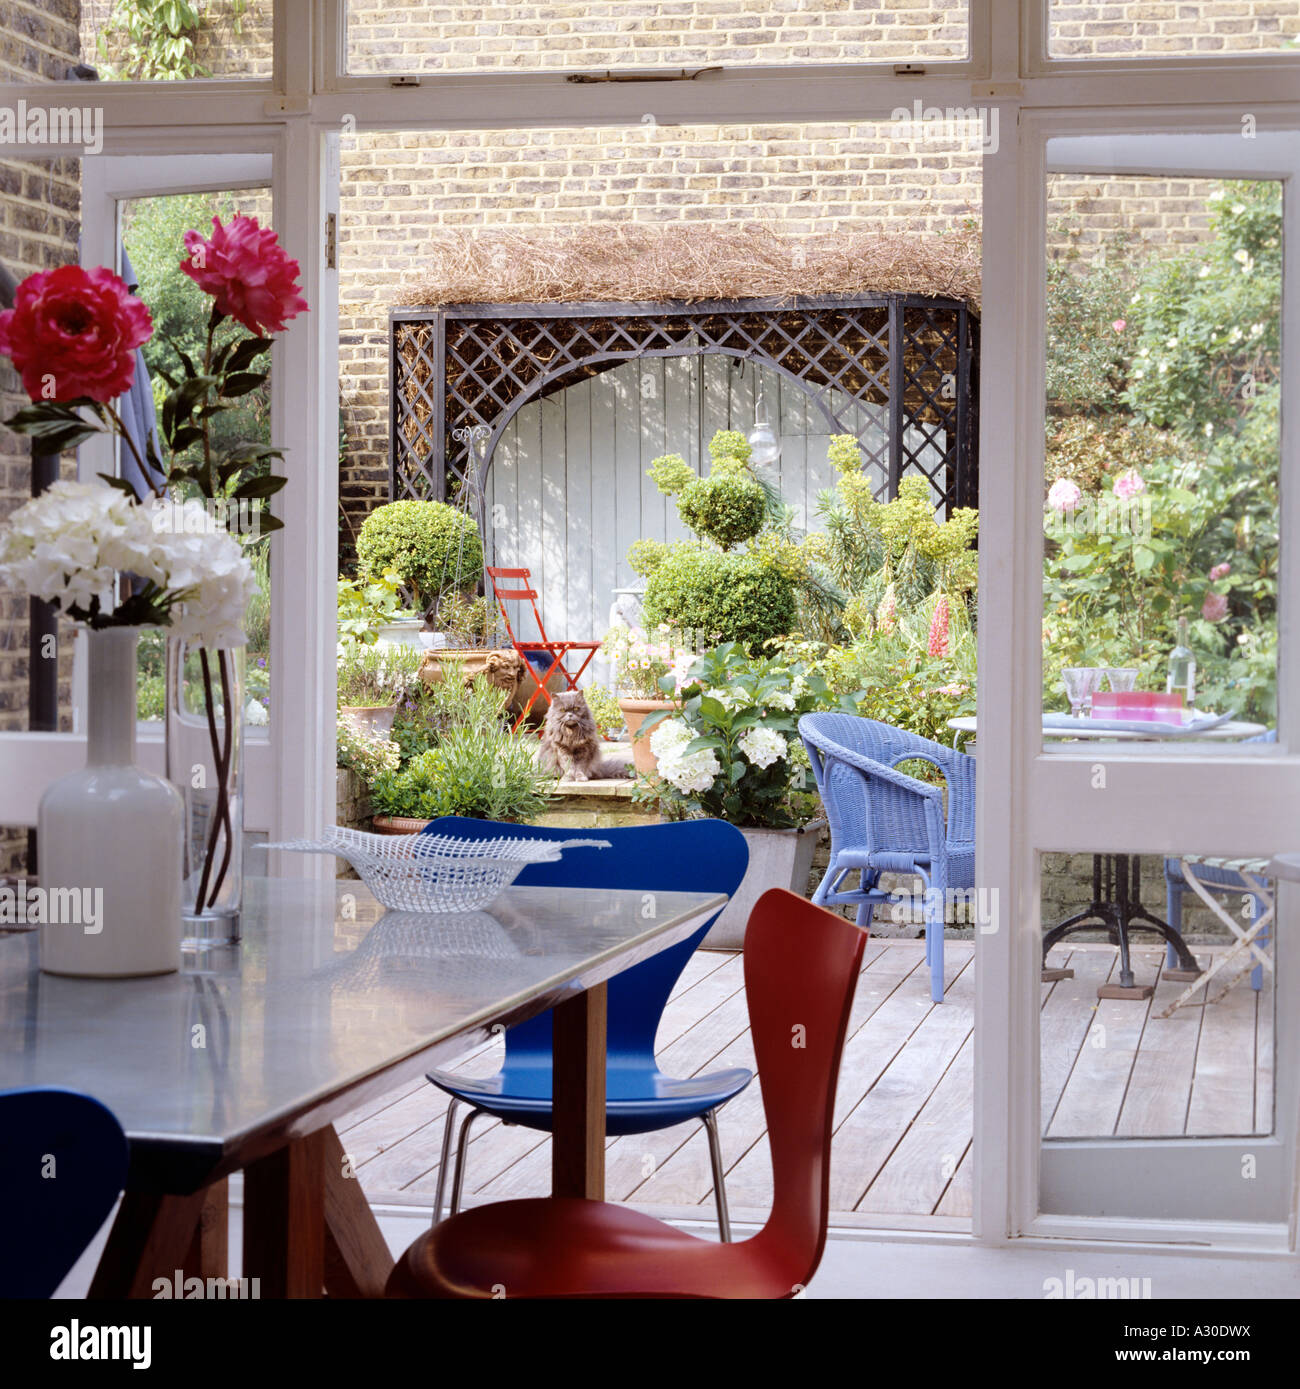 View through open French windows to walled patio with wooden decking, pot plants and boxwood topiary - Stock Image